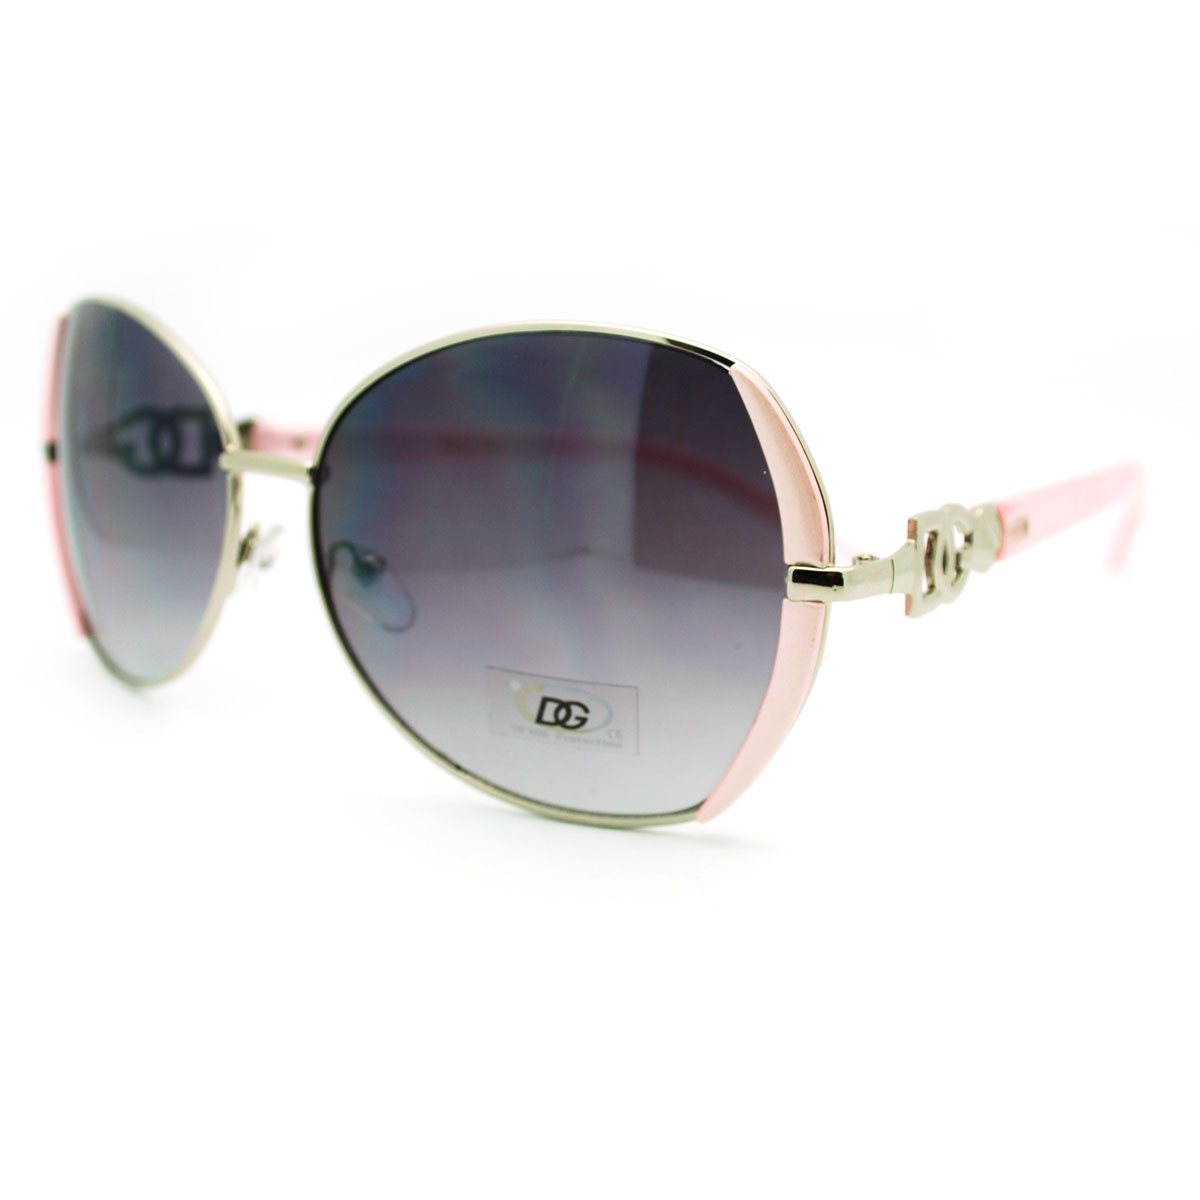 Buckle Sunglasses  metal rim erfly designer fashion sunglasses with belt buckle